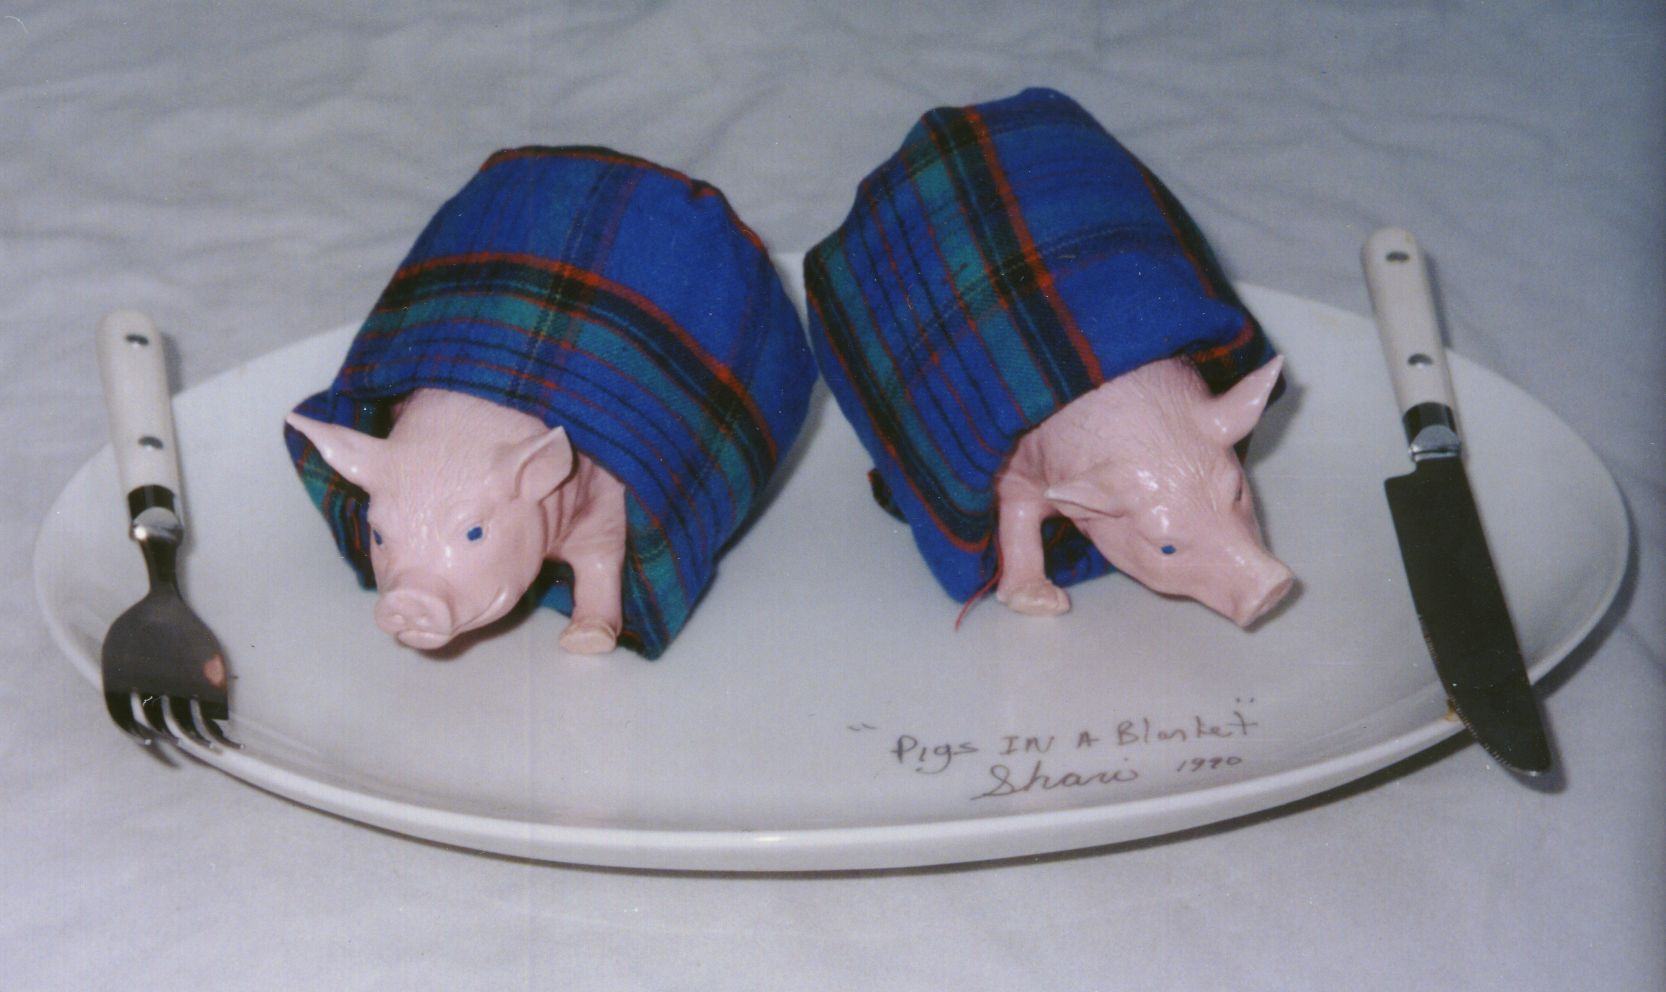 ... of Miscellaneous Merriment: National Pigs in a Blanket Day, April 24th